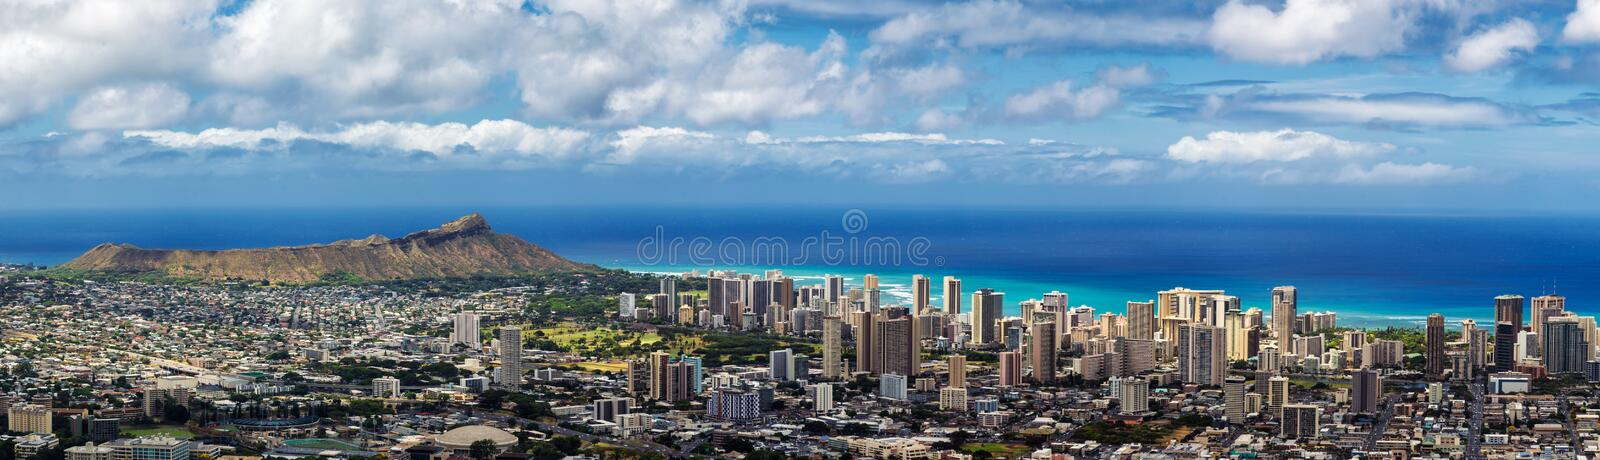 Panorama van de stad, Waikiki en Diamond Head van Honolulu stock foto's